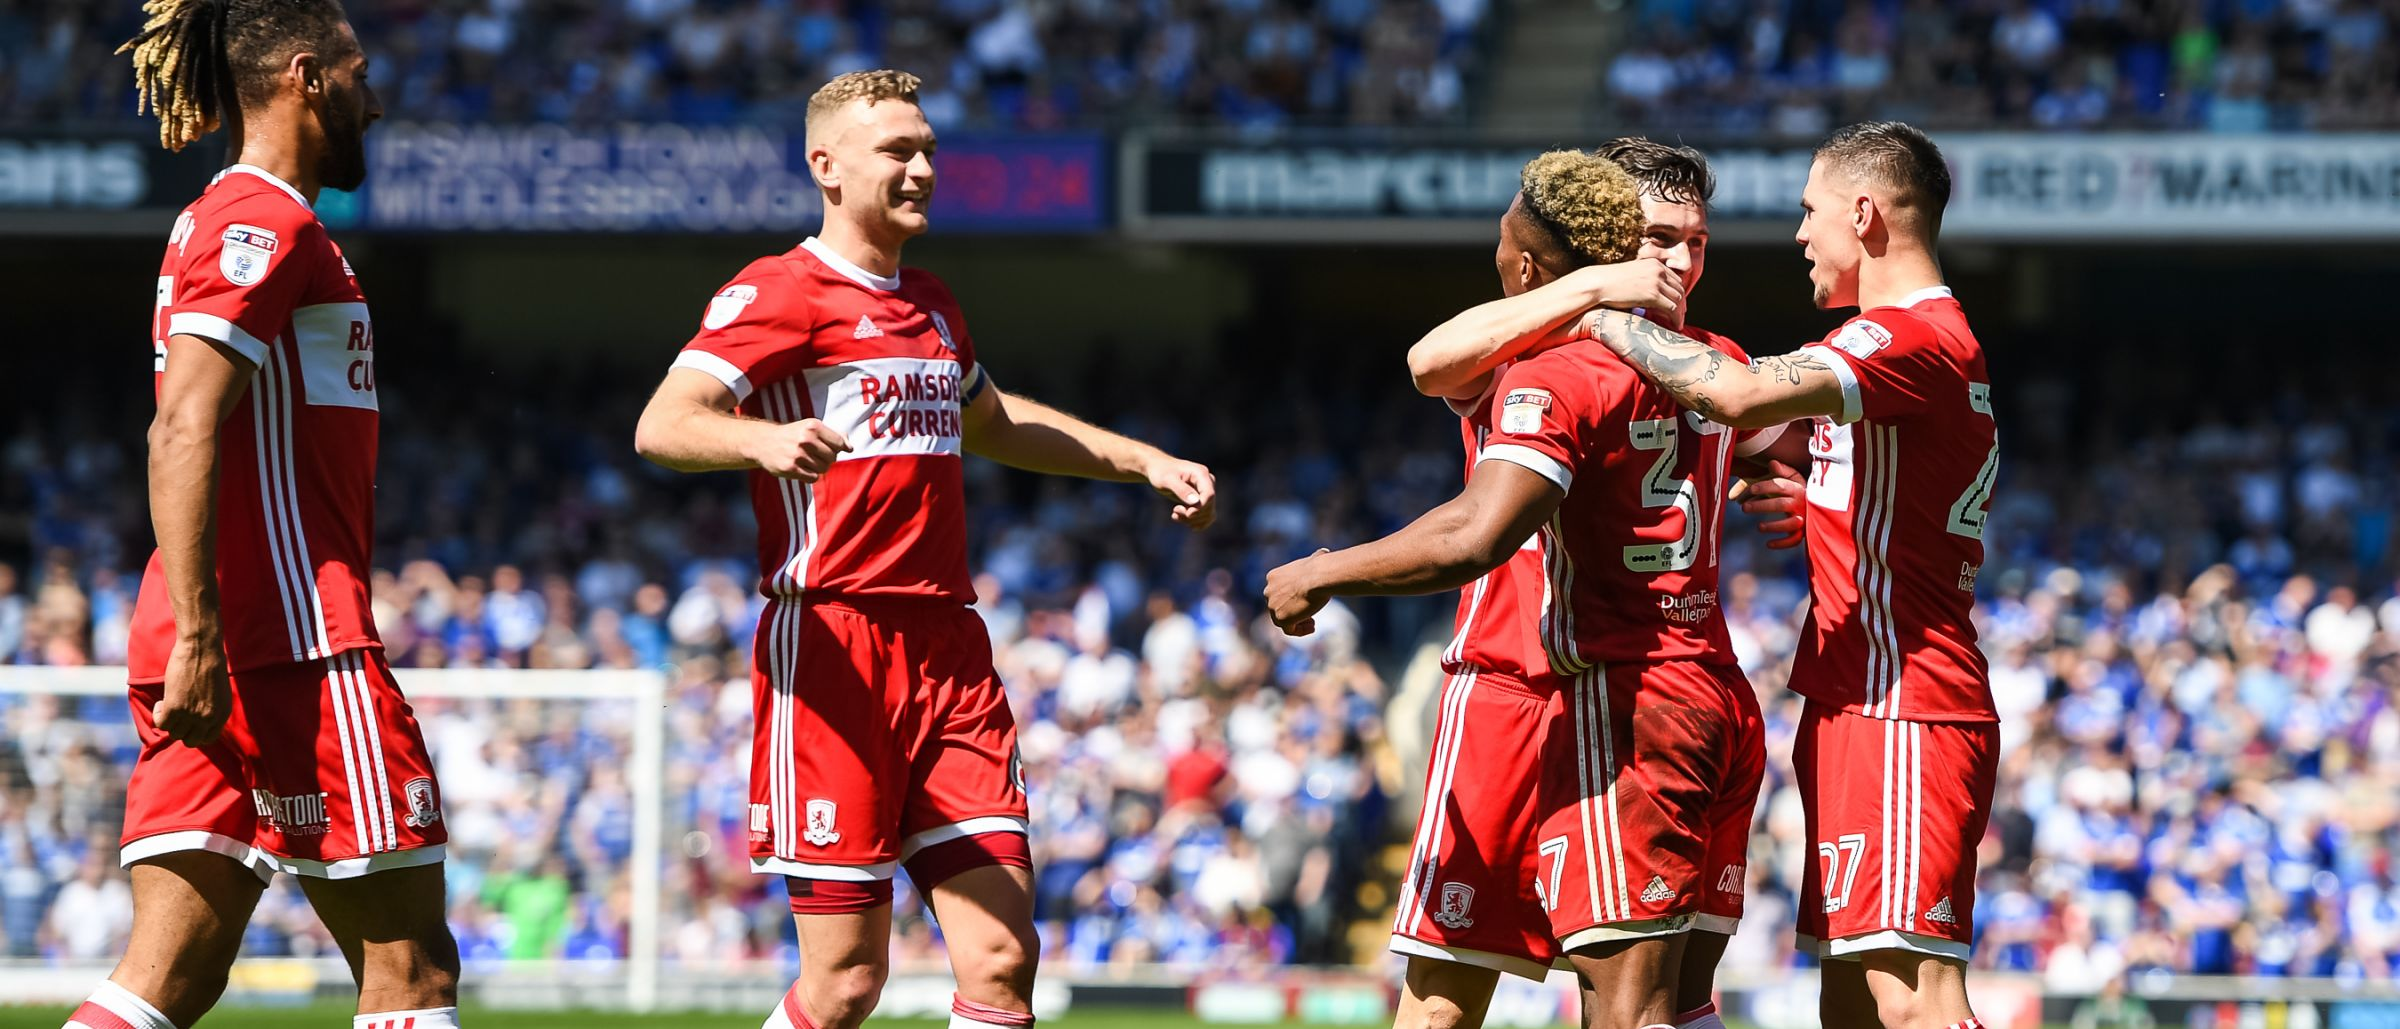 Boro team celebrate Stewart Downing's goal at Ipswich